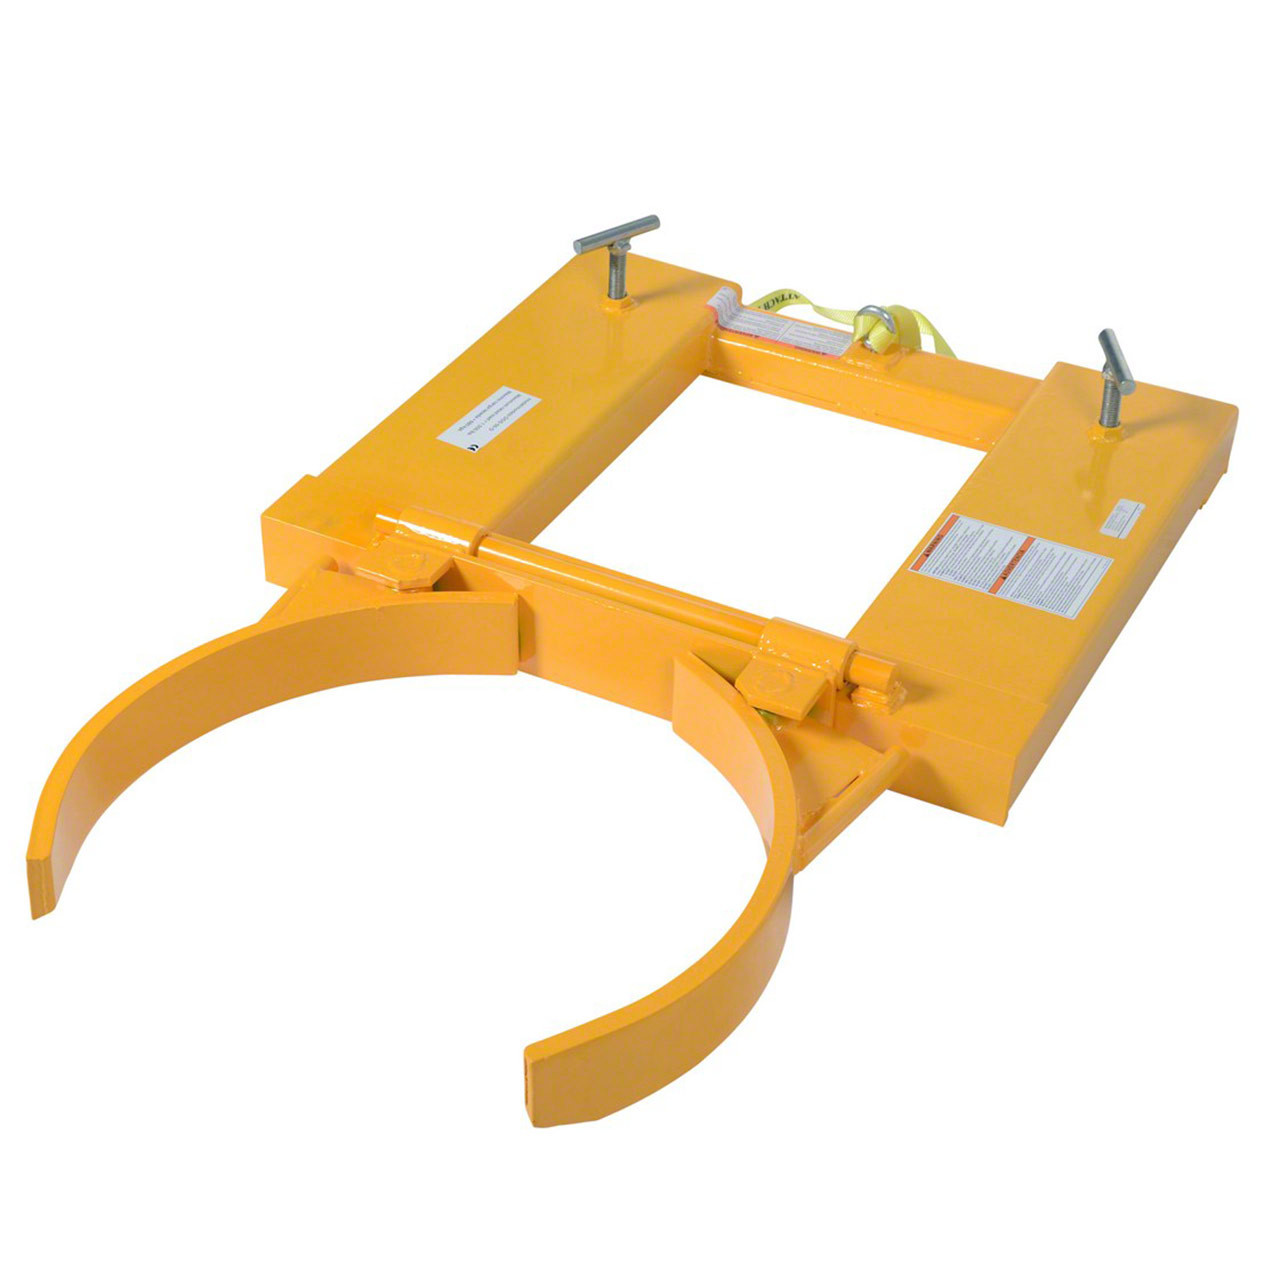 Vestil's DGS-55-D single drum lifter